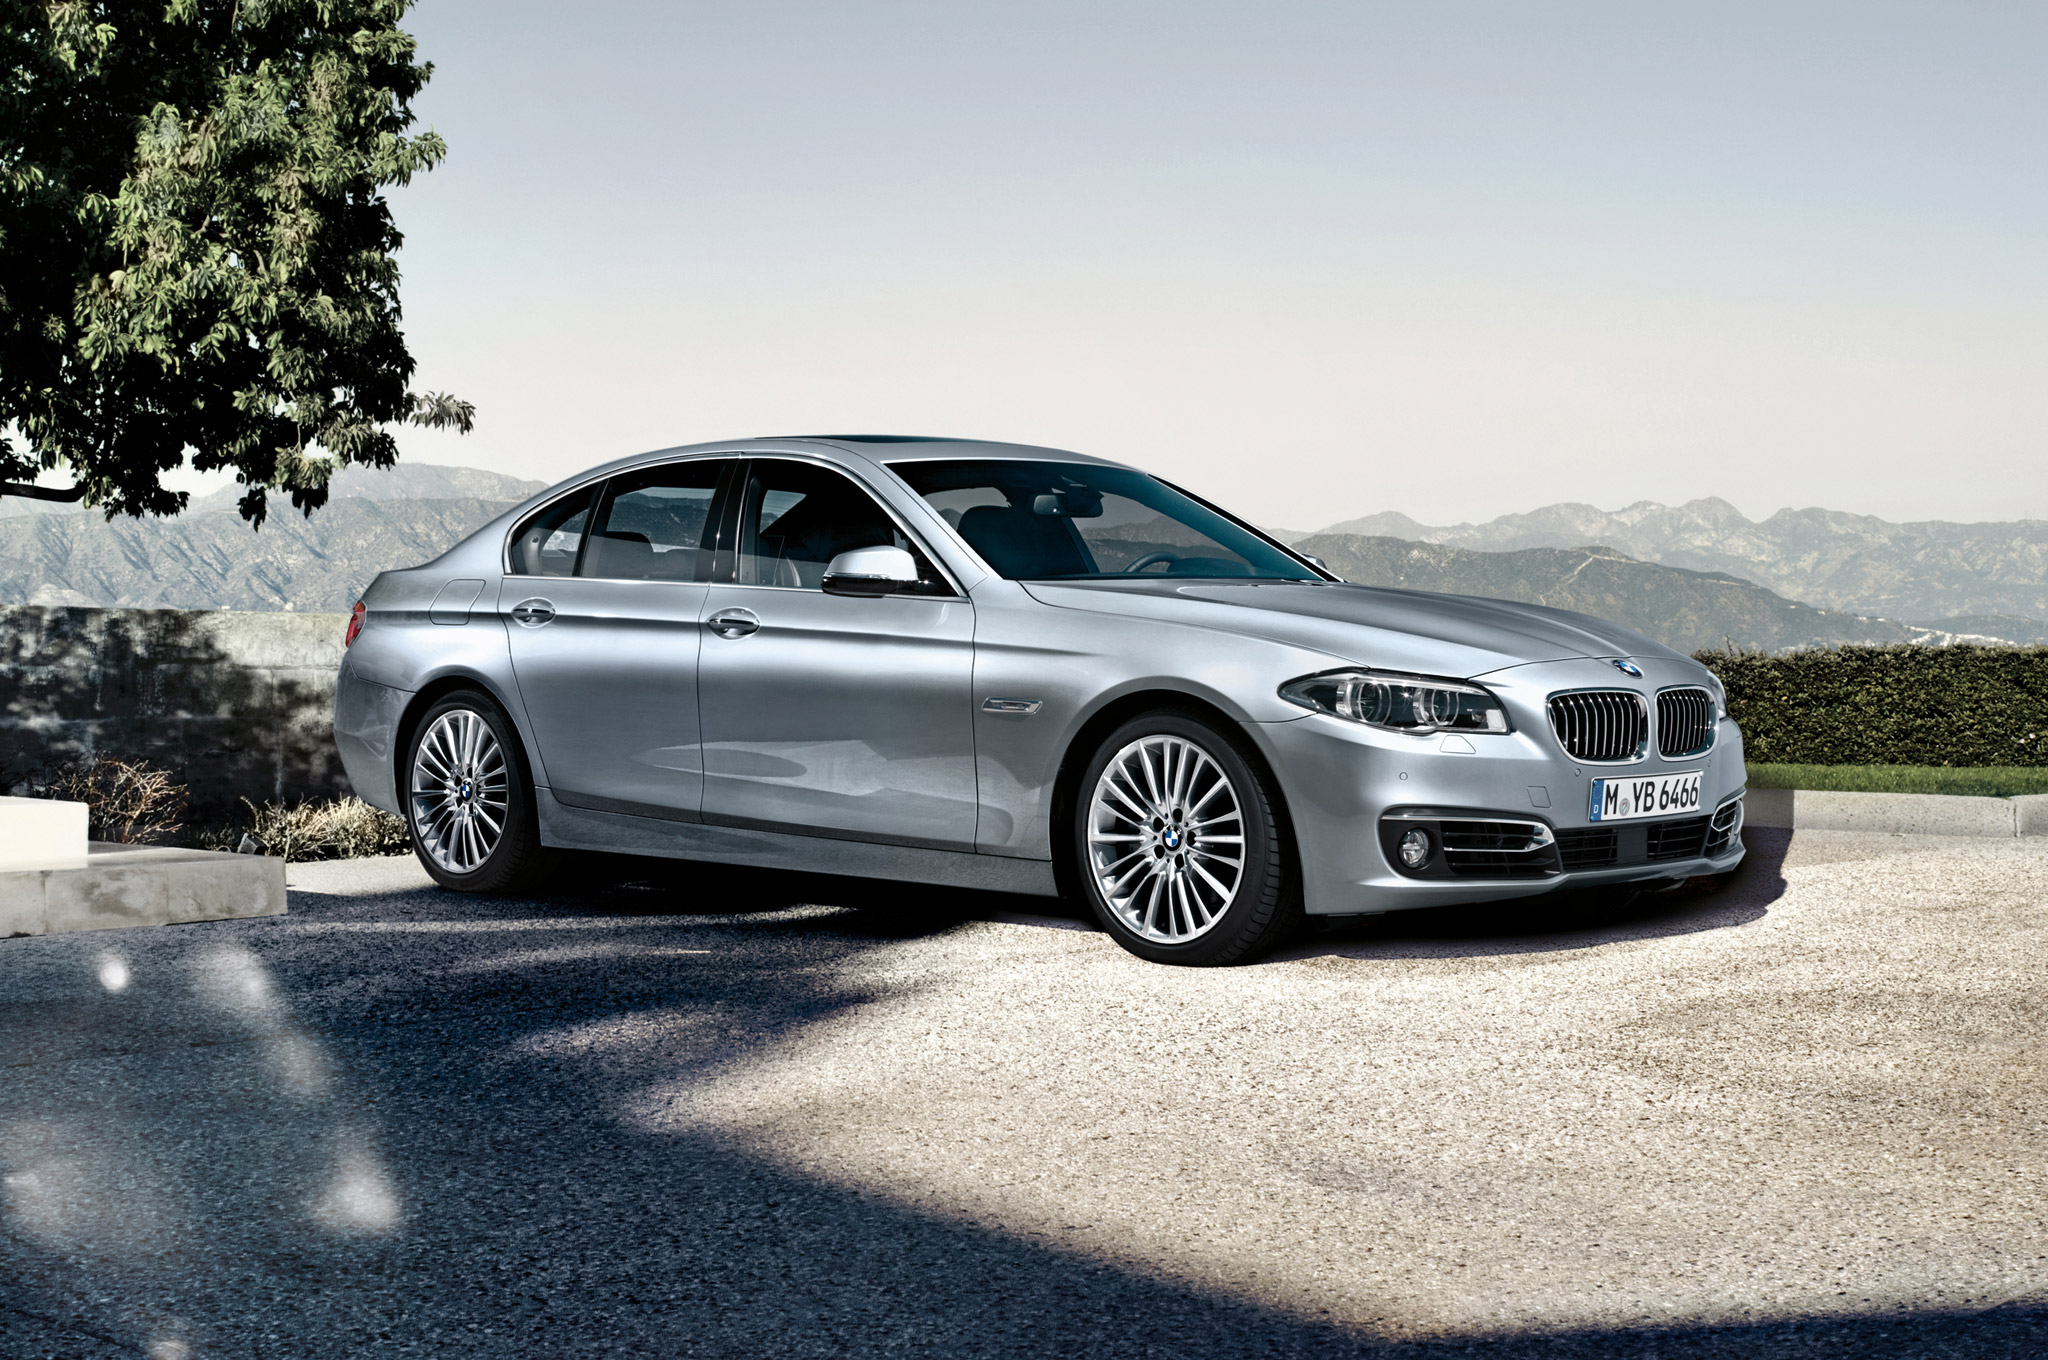 BMW 5 series 550i 2014 photo - 11